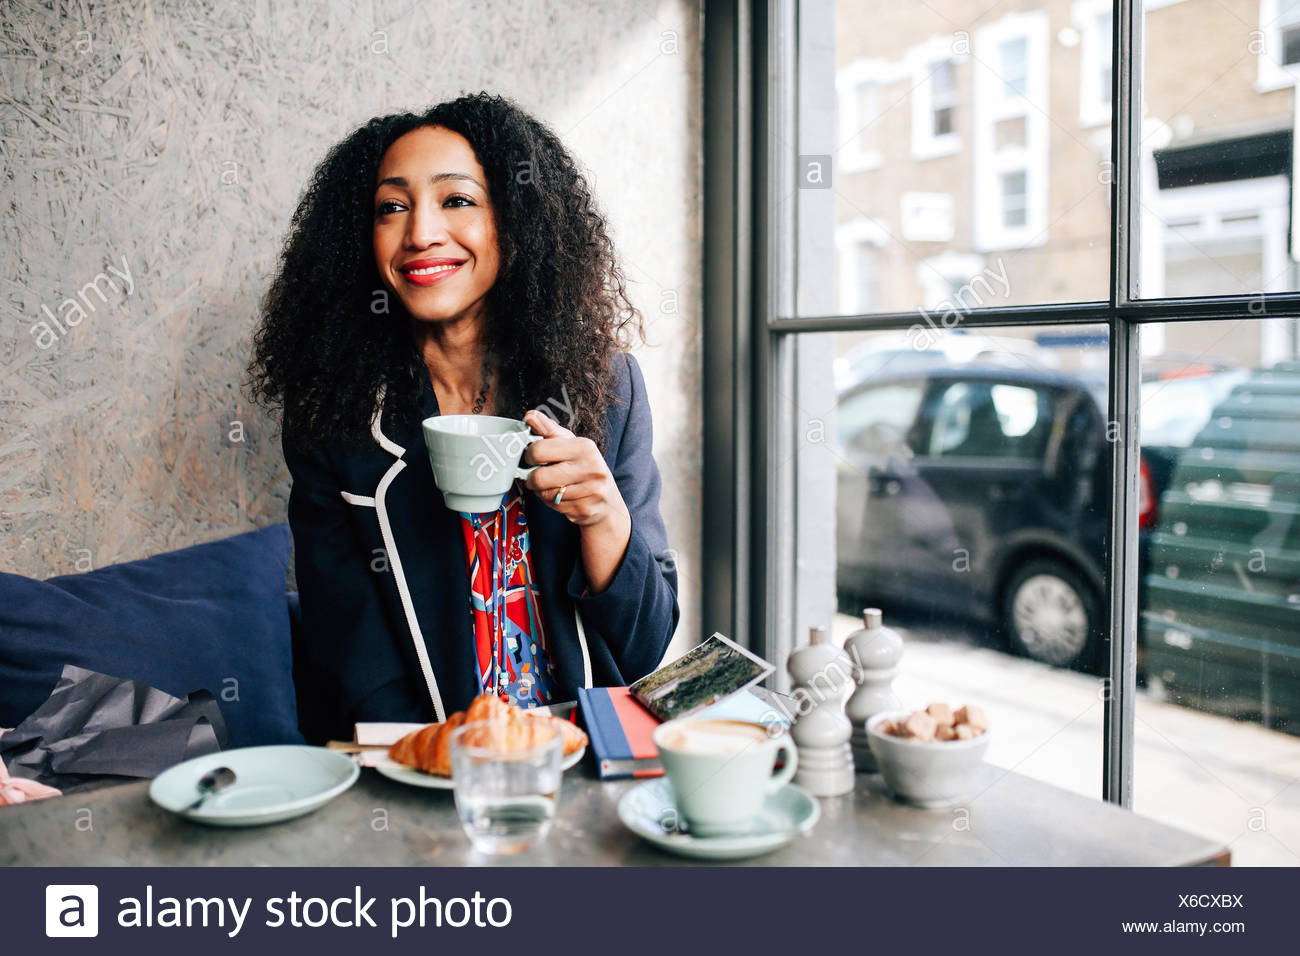 Mid adult woman holding coffee cup in cafe - Stock Image